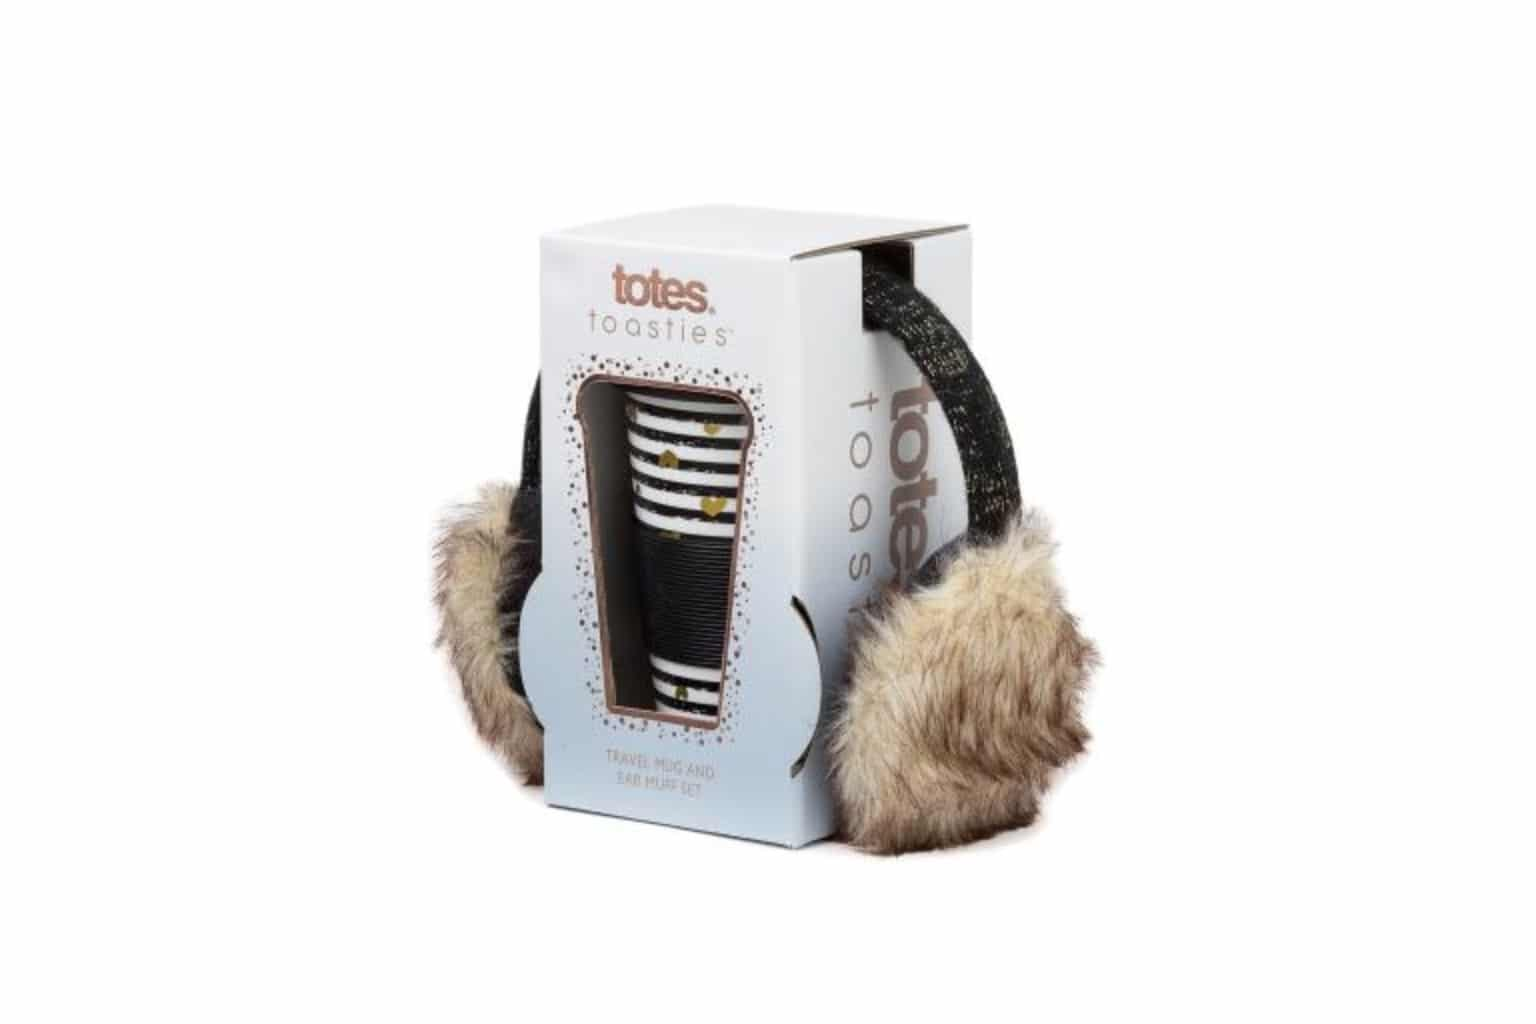 totes Ceramic Travel Mug & Earmuff Gift Set